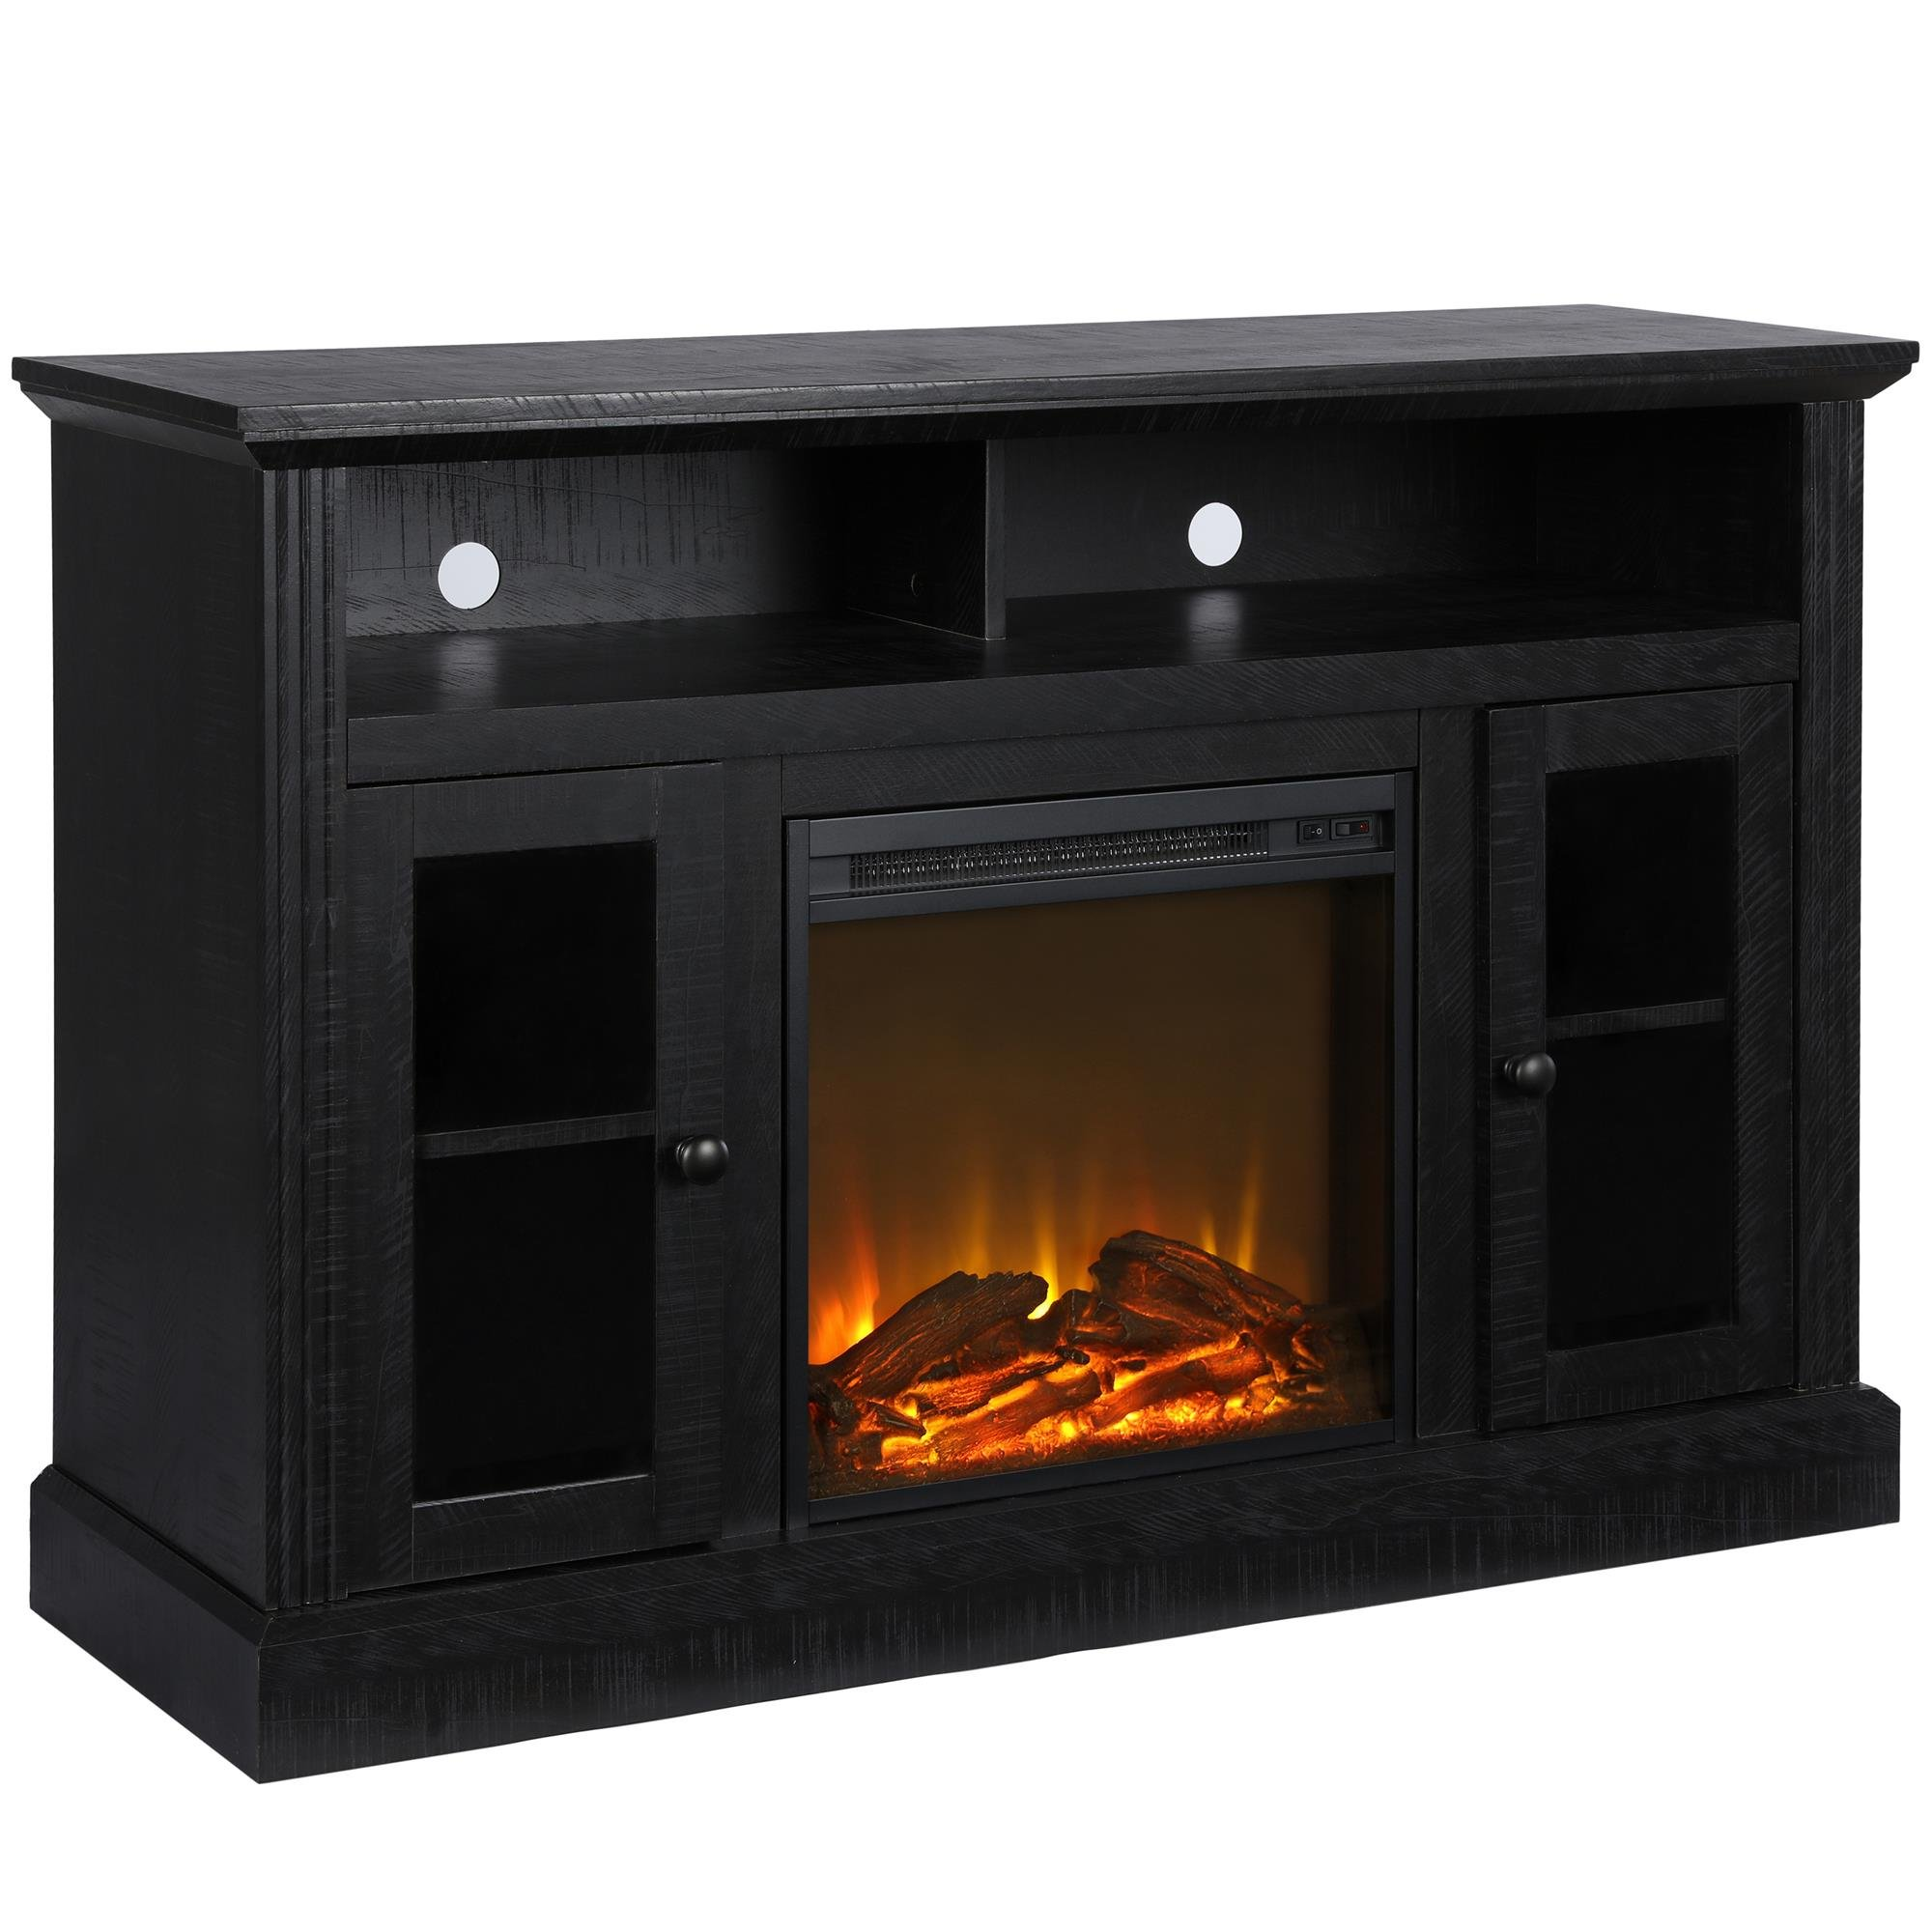 Ameriwood Home Chicago Fireplace TV Stand for TVs up to 50'', Black